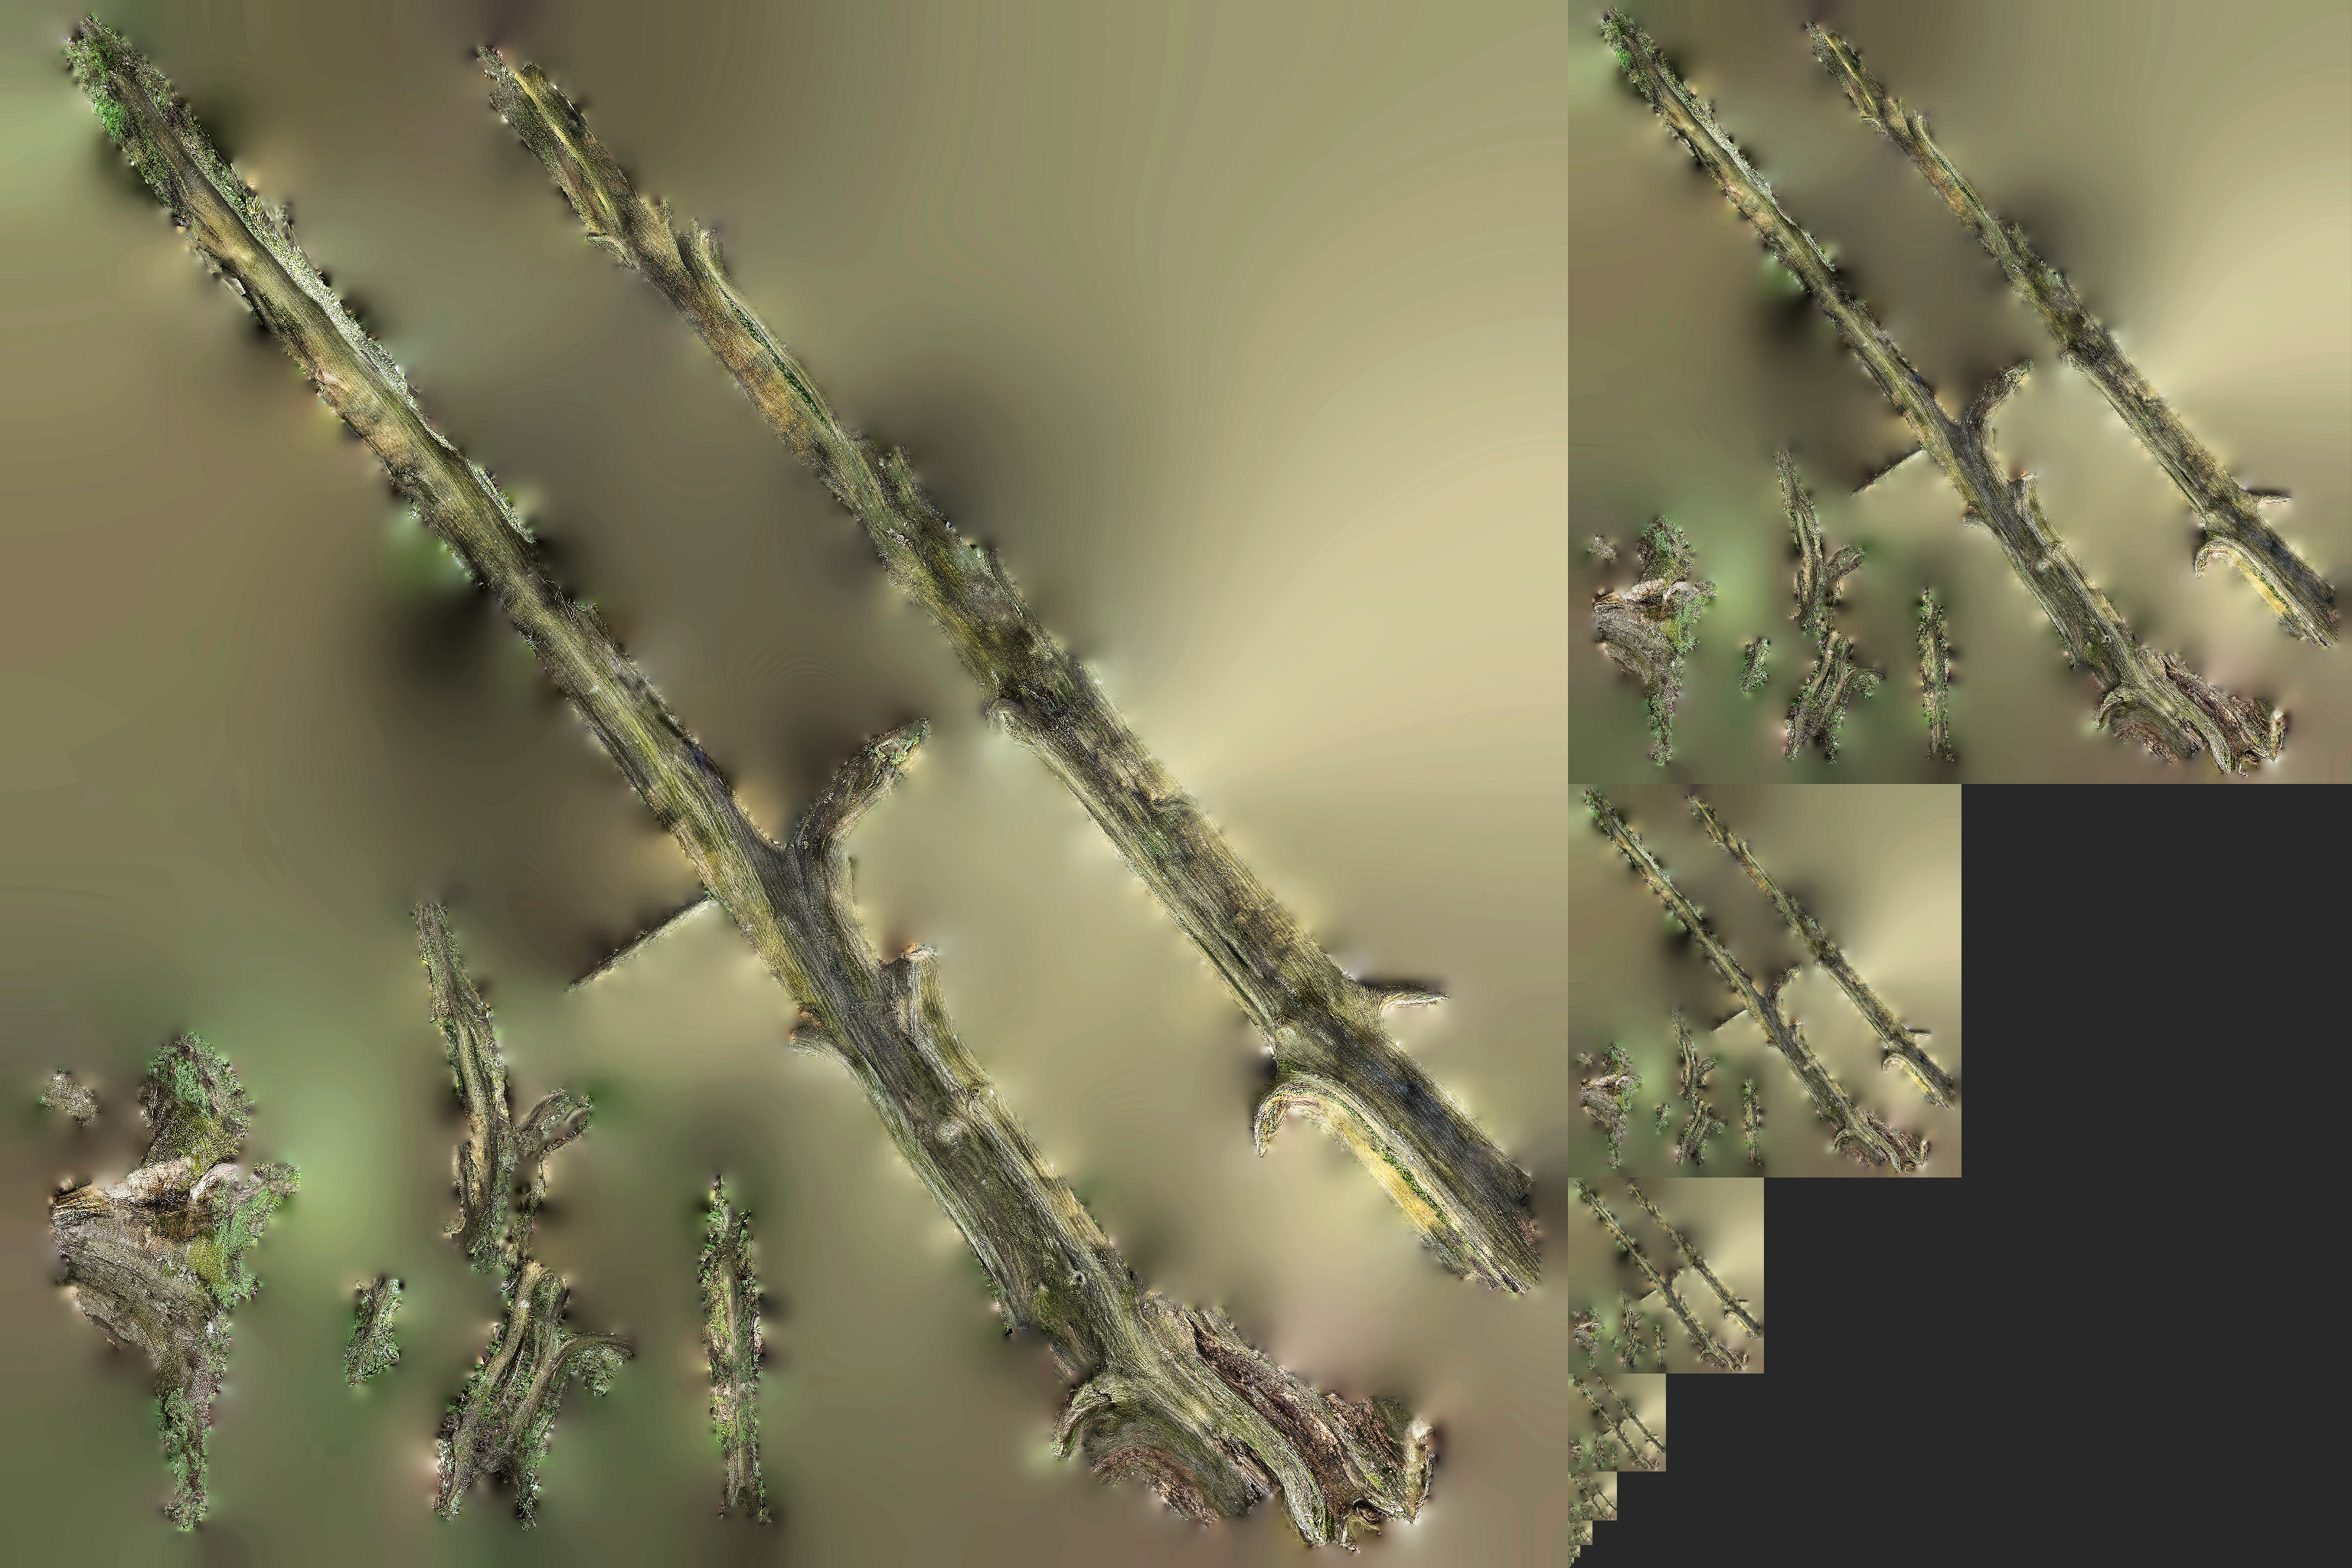 Figure 2: A mipmapped texture. Level 1 of the mipmap is shown on the left, levels 2 through 11 are shown on the right. Level 0 is not shown here. A bit of terminology that is often confusing: the lowest mipmap level is the highest resolution level, while the highest mipmap level is the lowest resolution level.